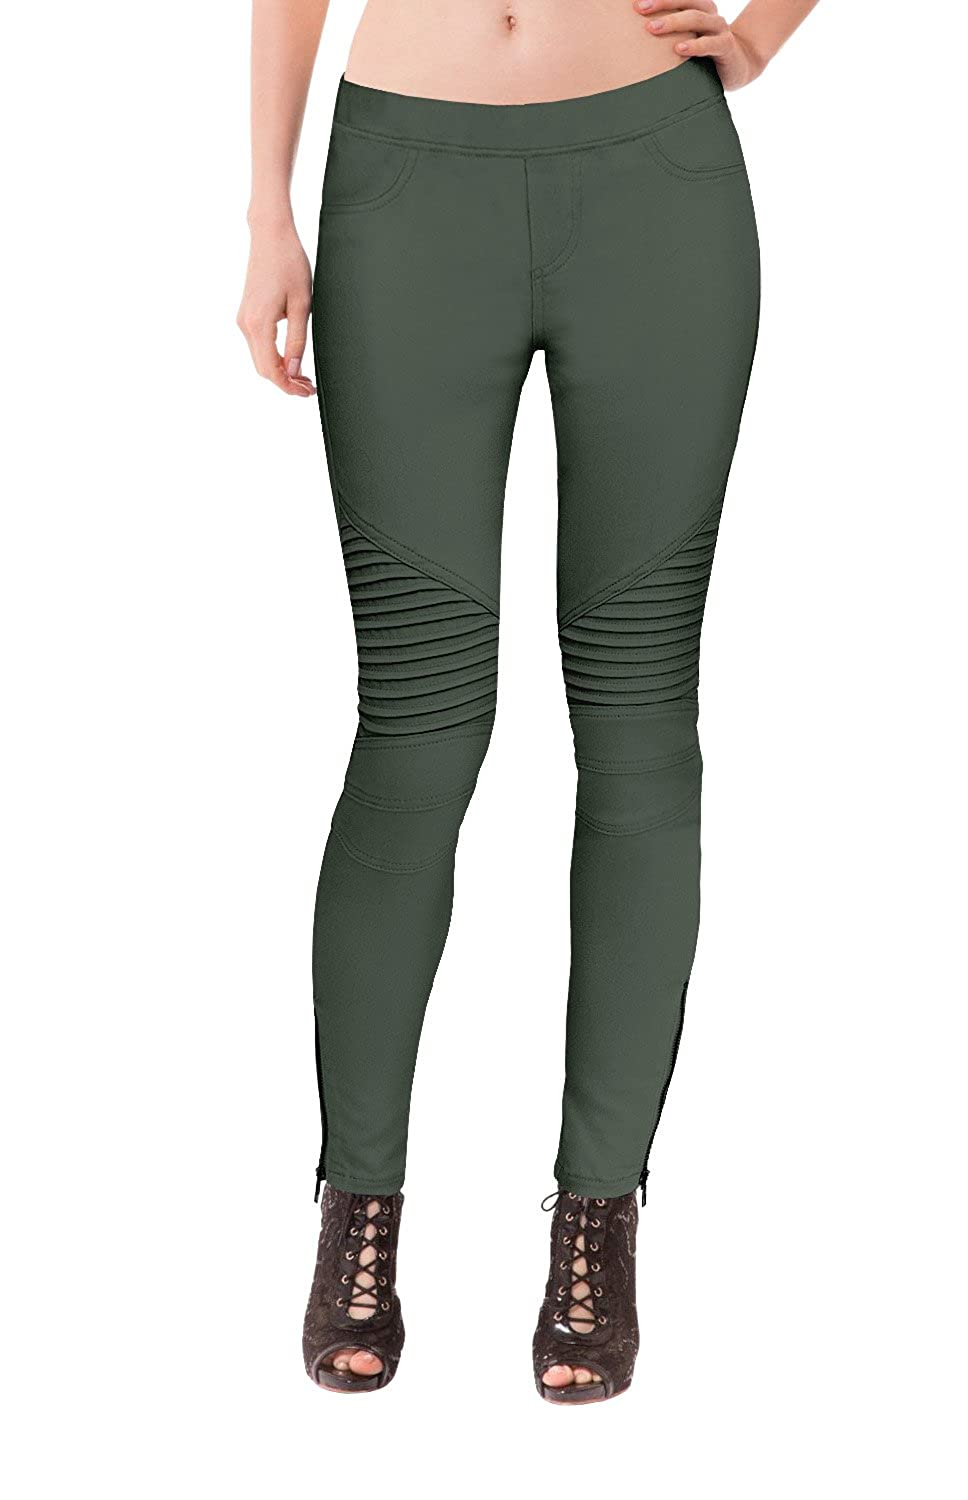 HyBrid & Company Womens Super Comfy Stretch Ankle Zip Moto Skinny Pants